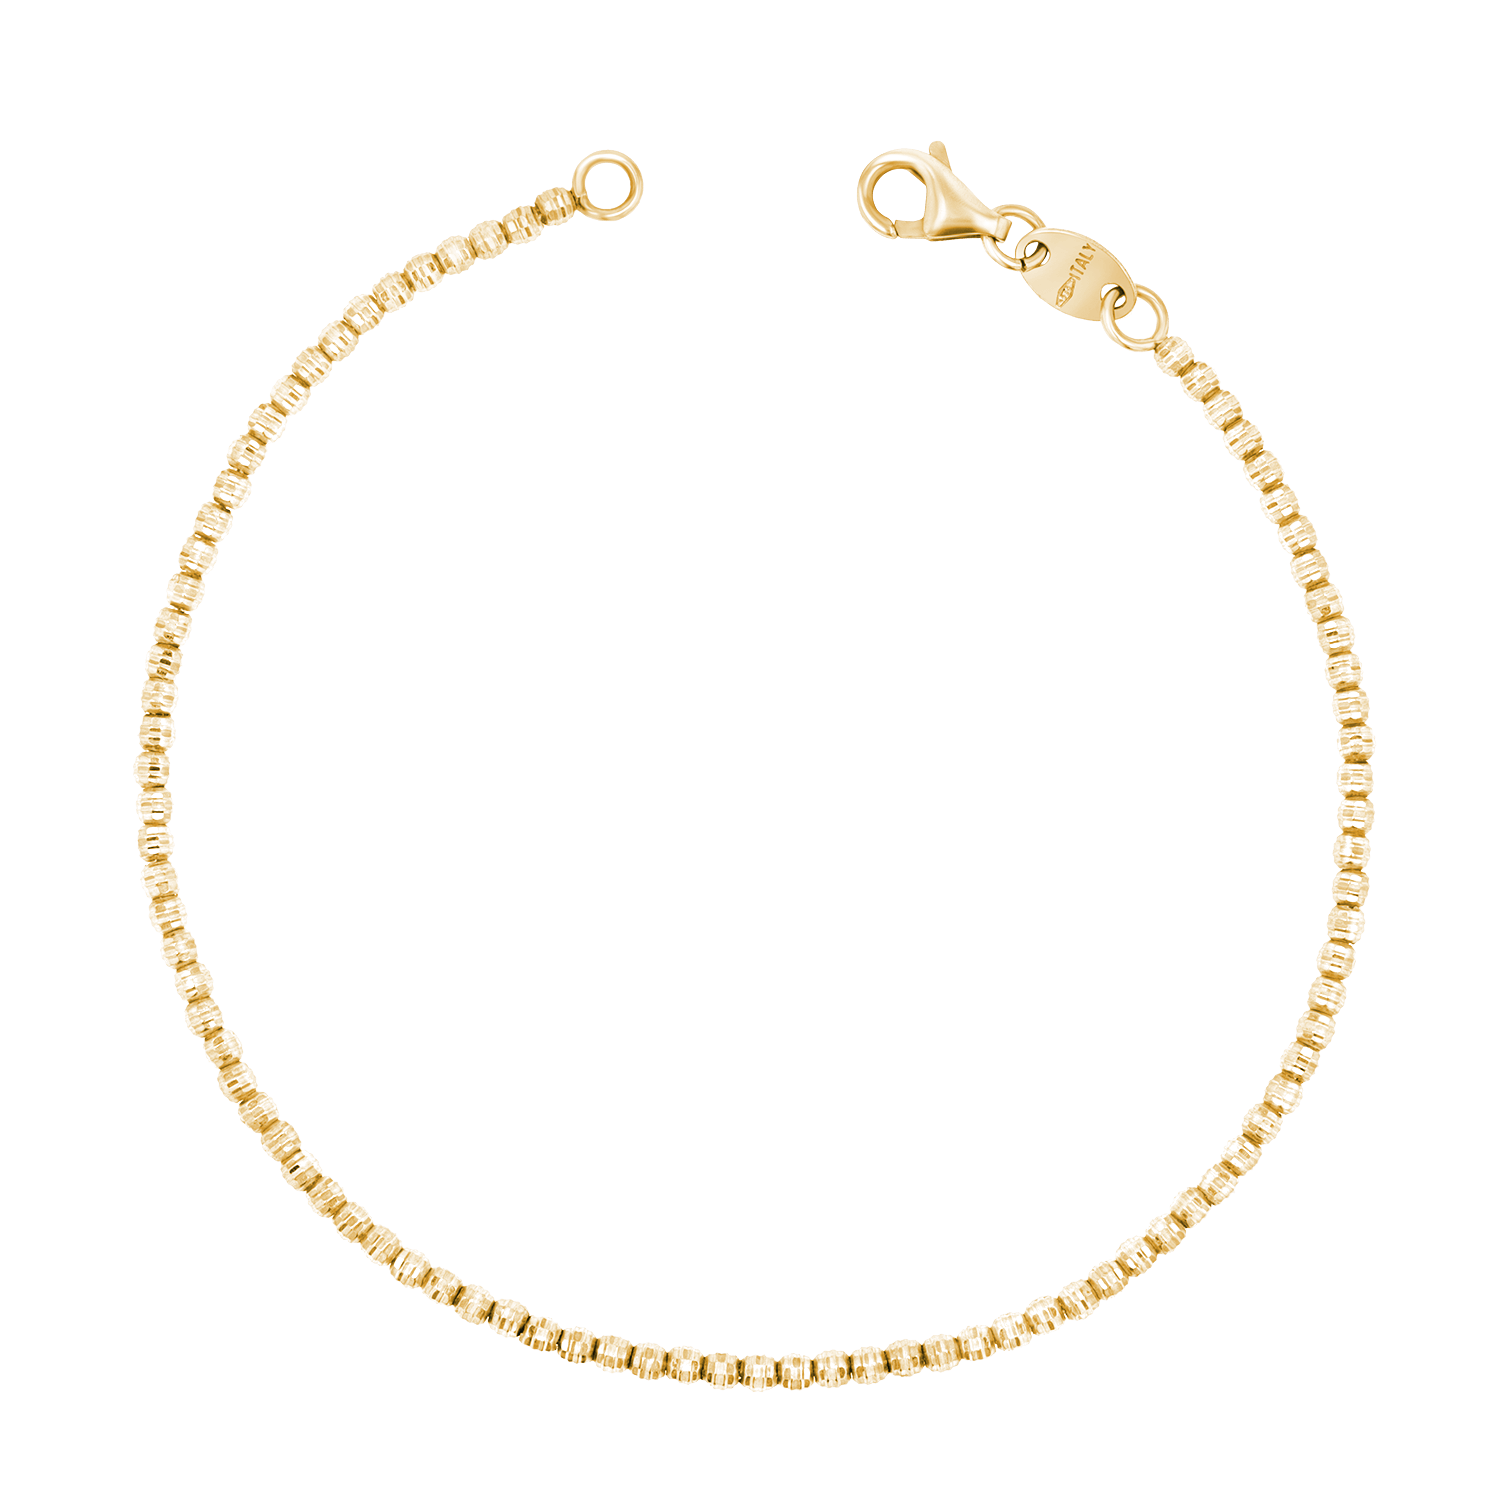 14K Gold Moon Cut Bracelet